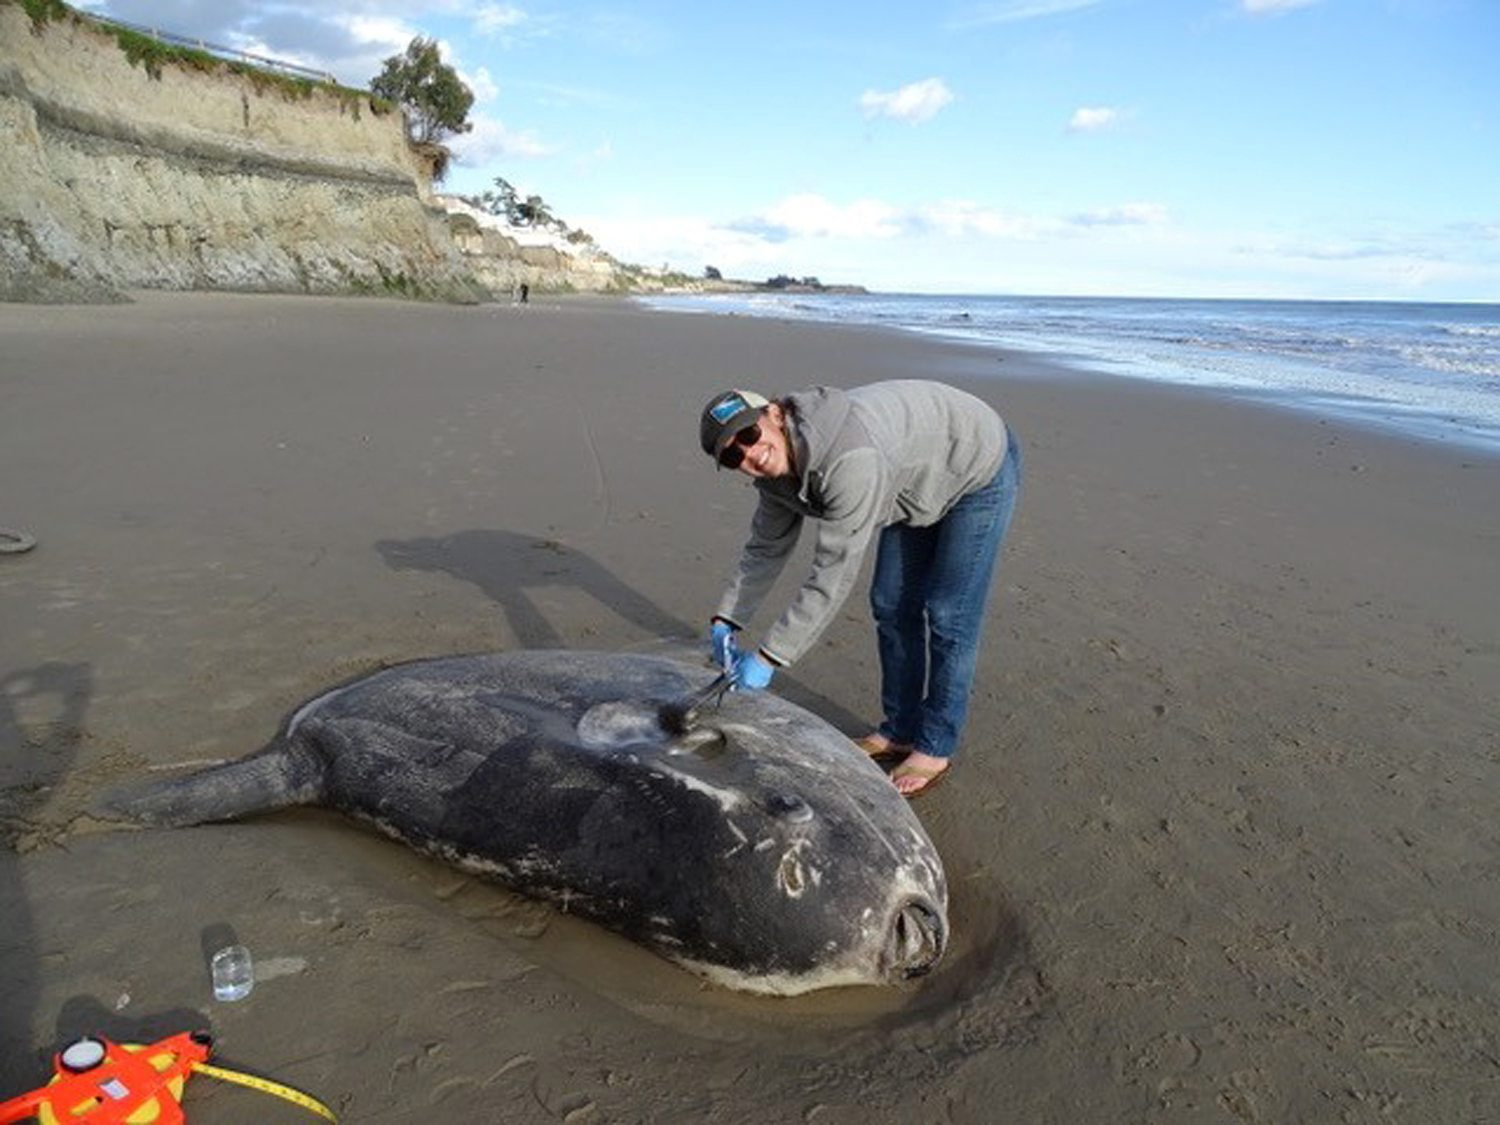 Jessica Nielsen poses next to a hoodwinker sunfish on a beach in Santa Barbara, California, U.S., February 21, 2019, in this picture obtained from social media.   Thomas Turner via REUTERS      ATTENTION EDITORS - THIS IMAGE HAS BEEN SUPPLIED BY A THIRD PARTY. MANDATORY CREDIT. NO RESALES. NO ARCHIVES.